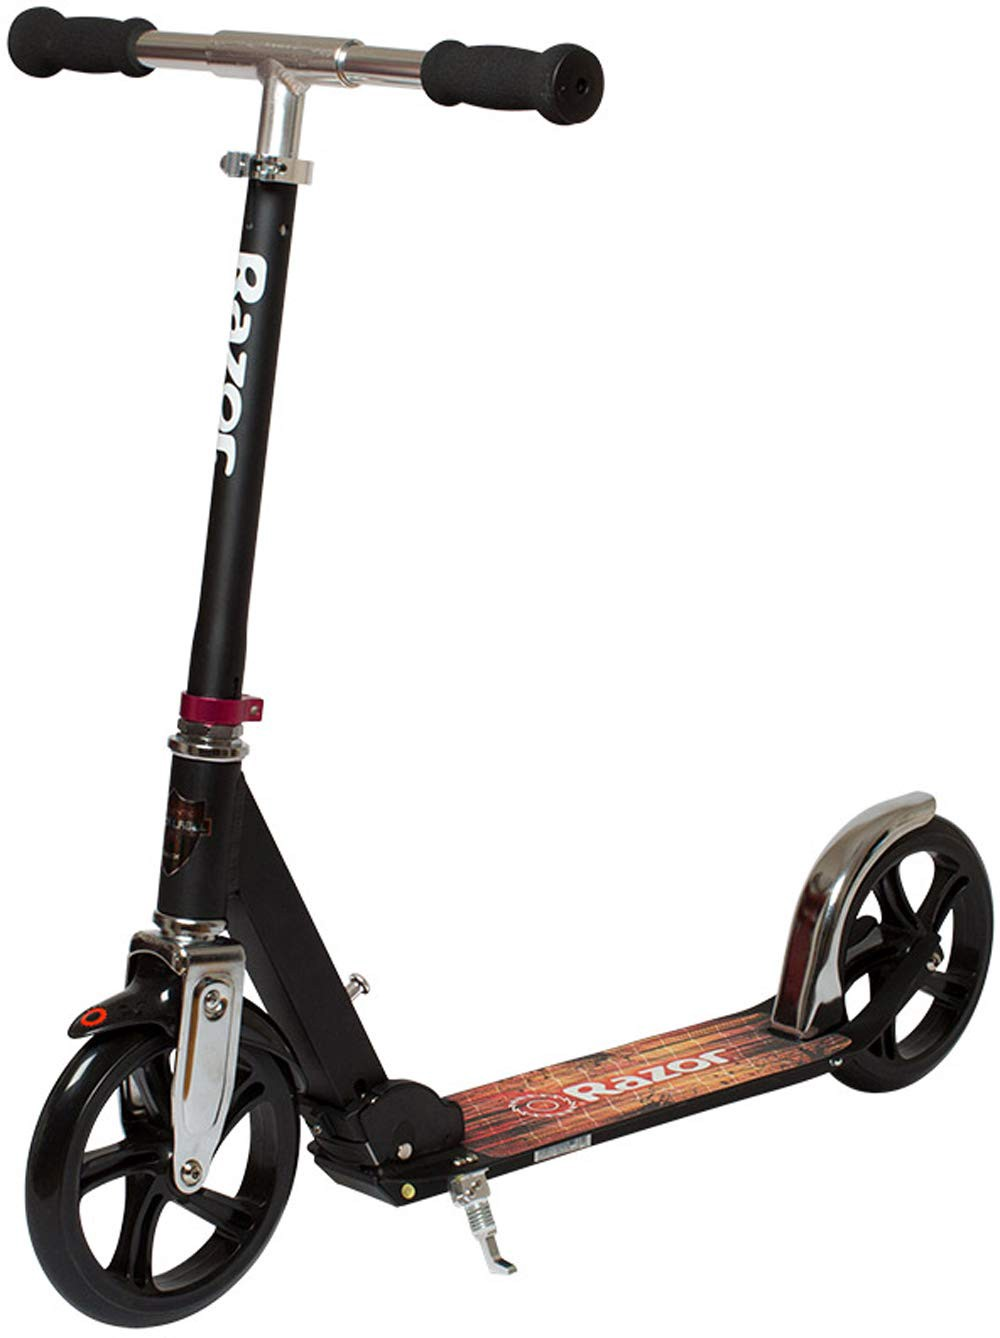 Top 10 Best Kick Scooter For Commuting Buyer S Guide By Gizmo10 Medium